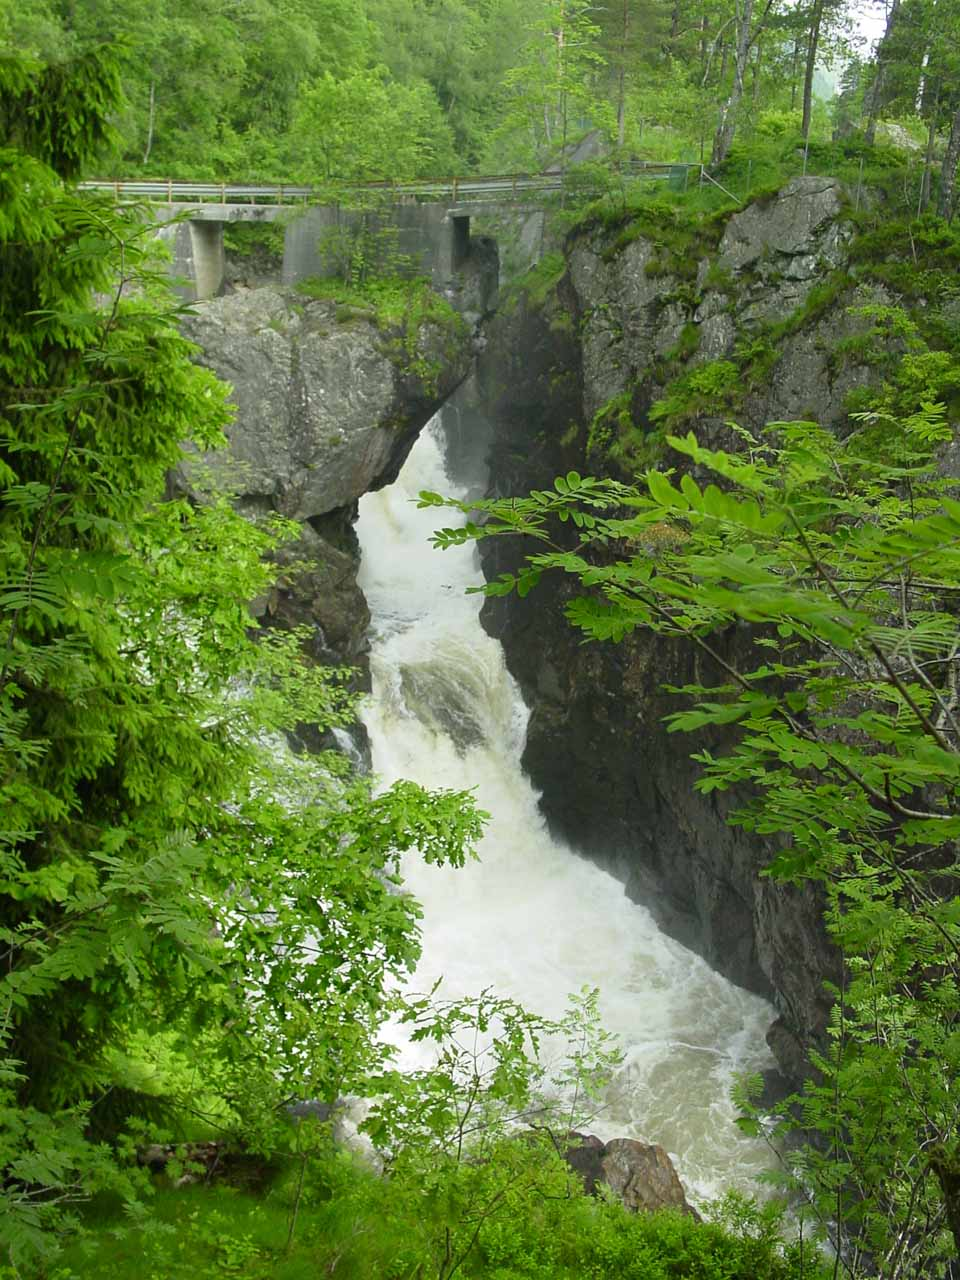 Looking down towards a partial view of Kvasfossen after crossing the bridge then walking a short distance downstream